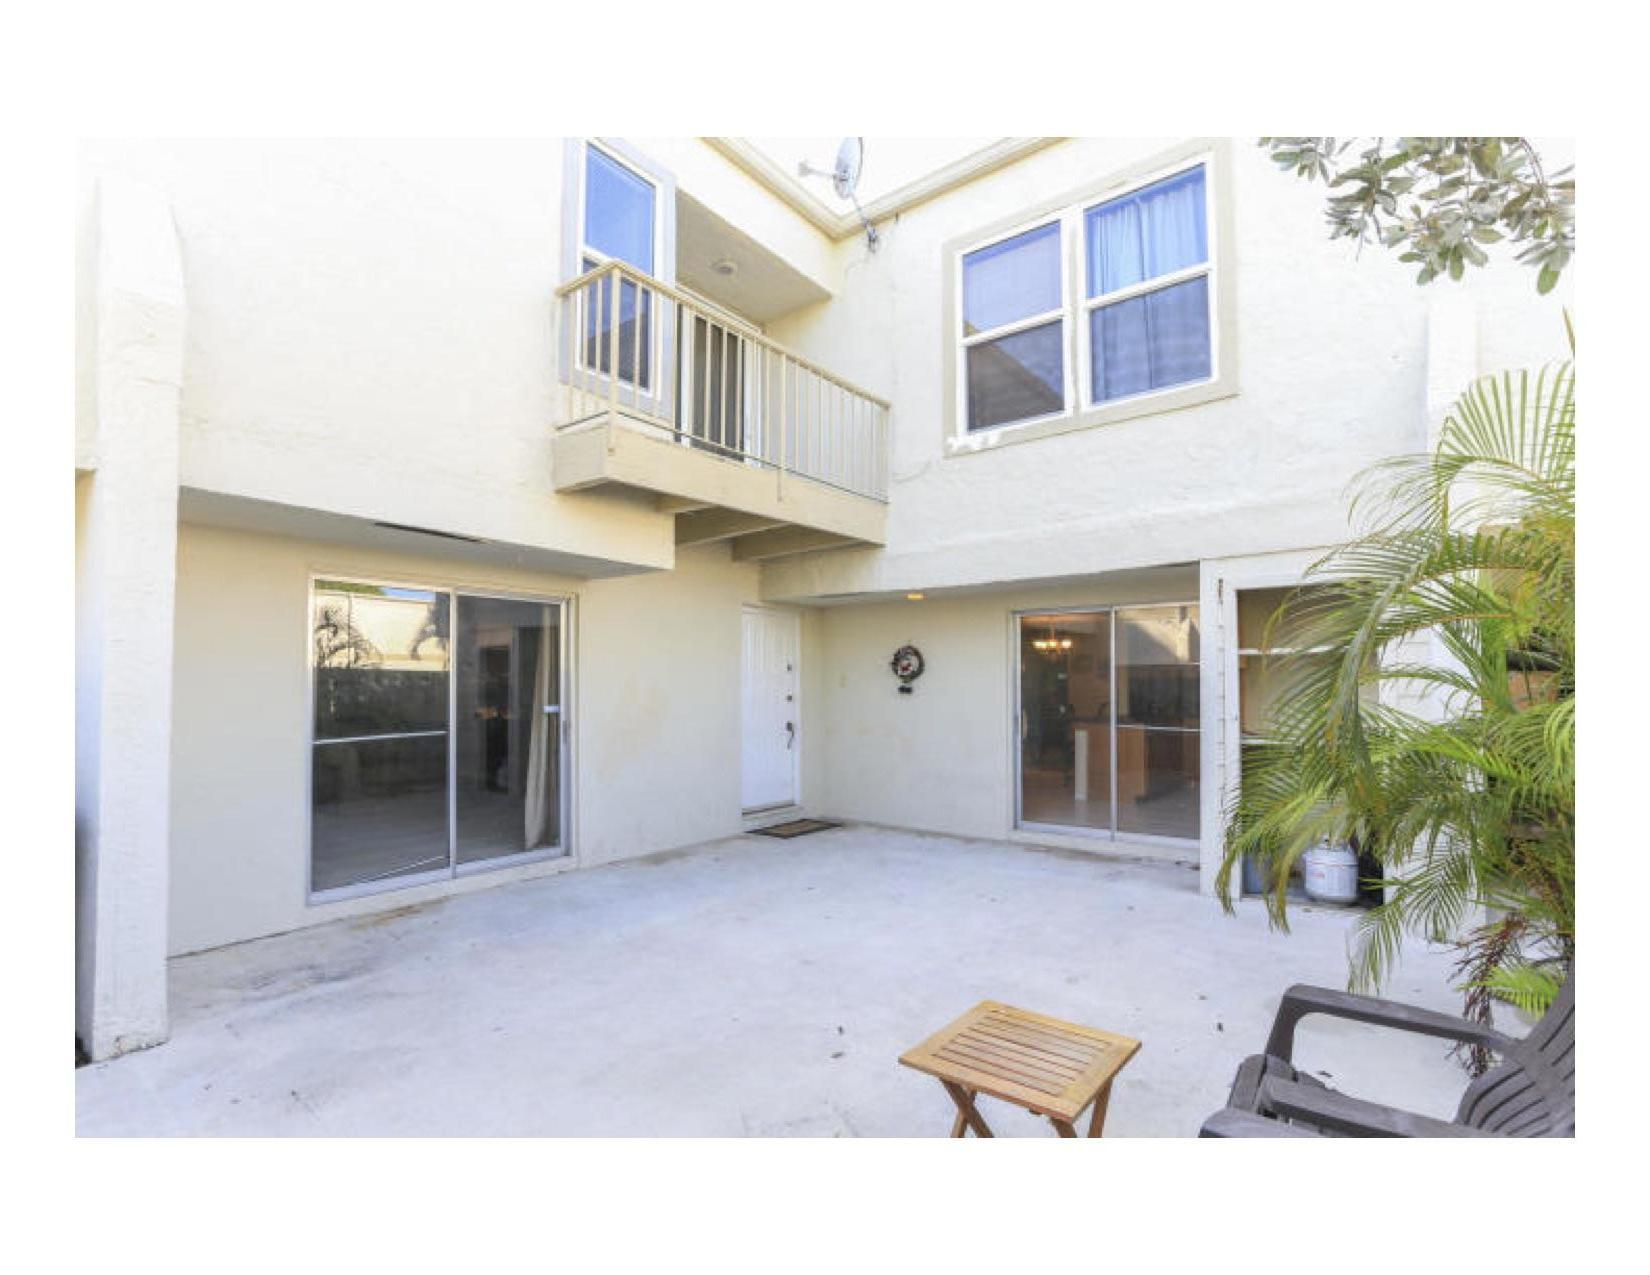 12063 Regal Court - Wellington, Florida